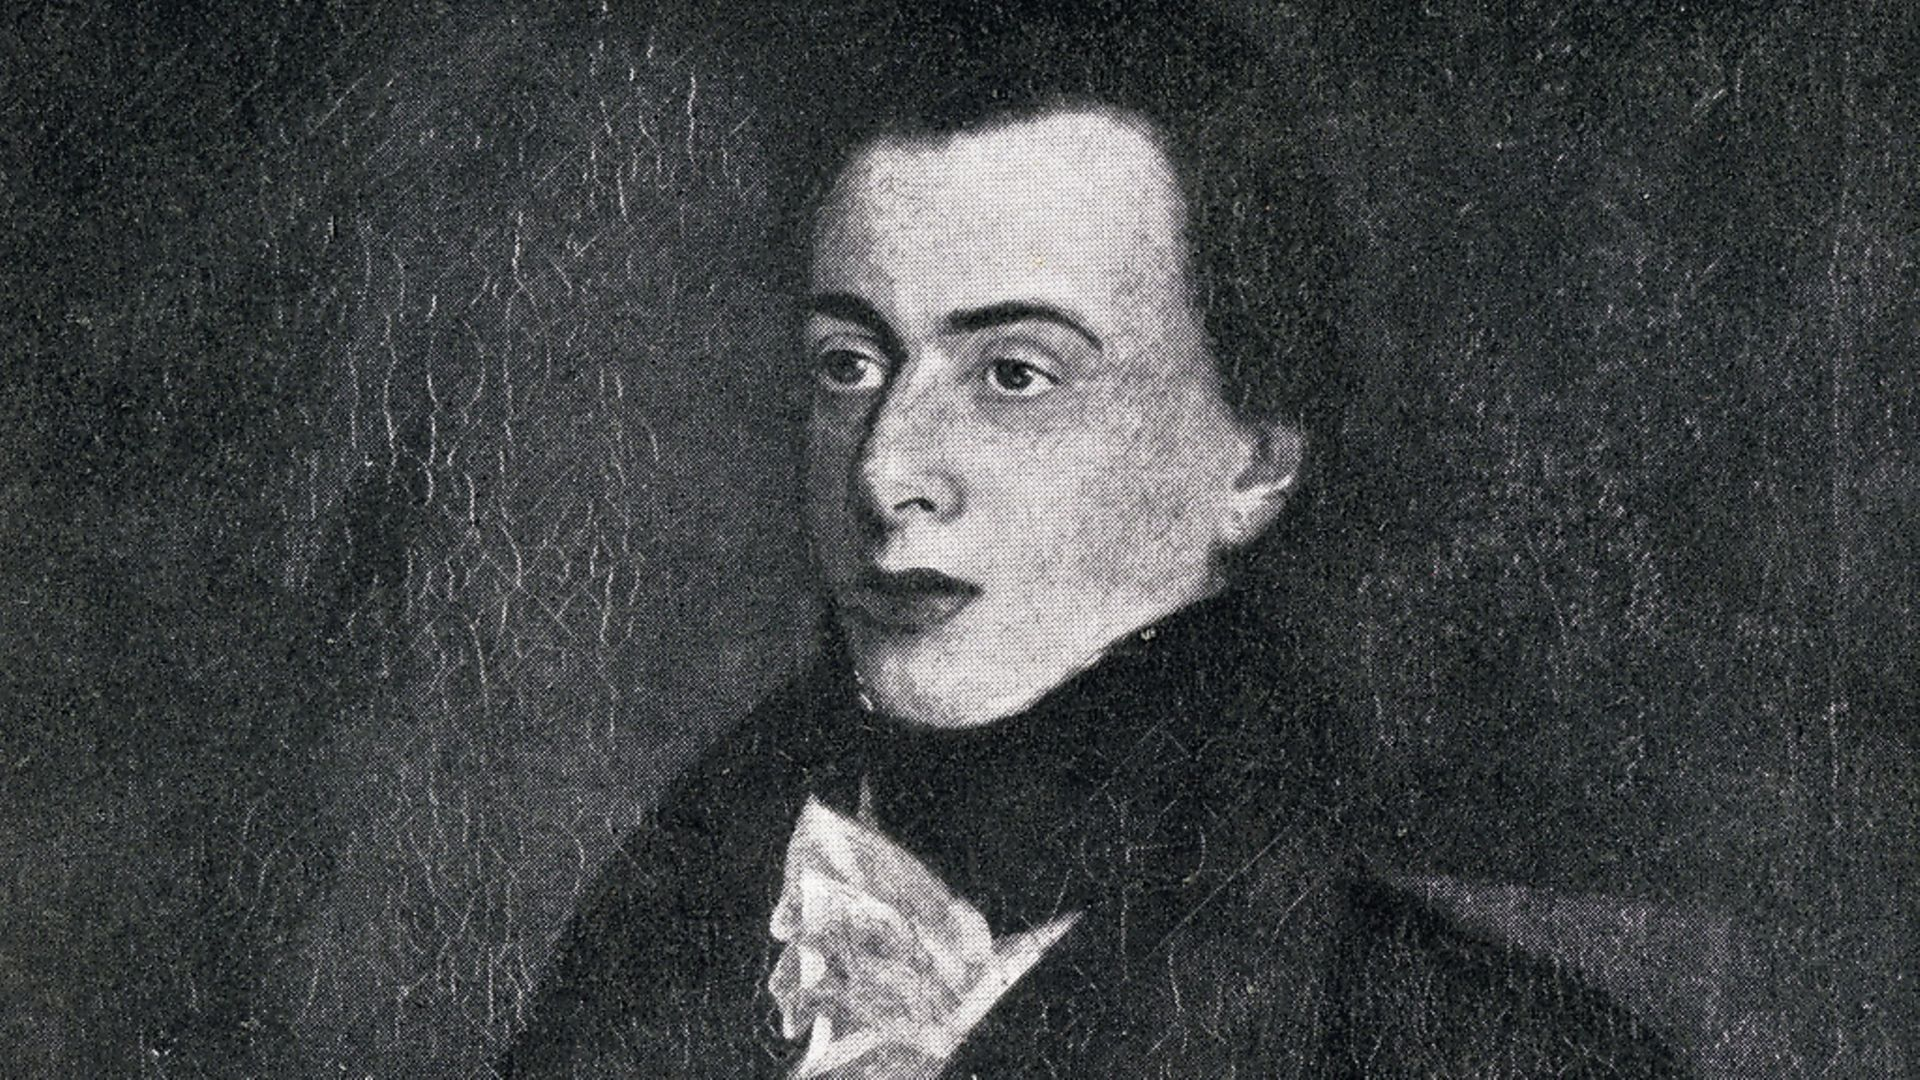 George Borrow,1803-1881. English writer and traveller. From the painting by John Borrow (Photo by Universal History Archive/Getty Images) - Credit: Getty Images